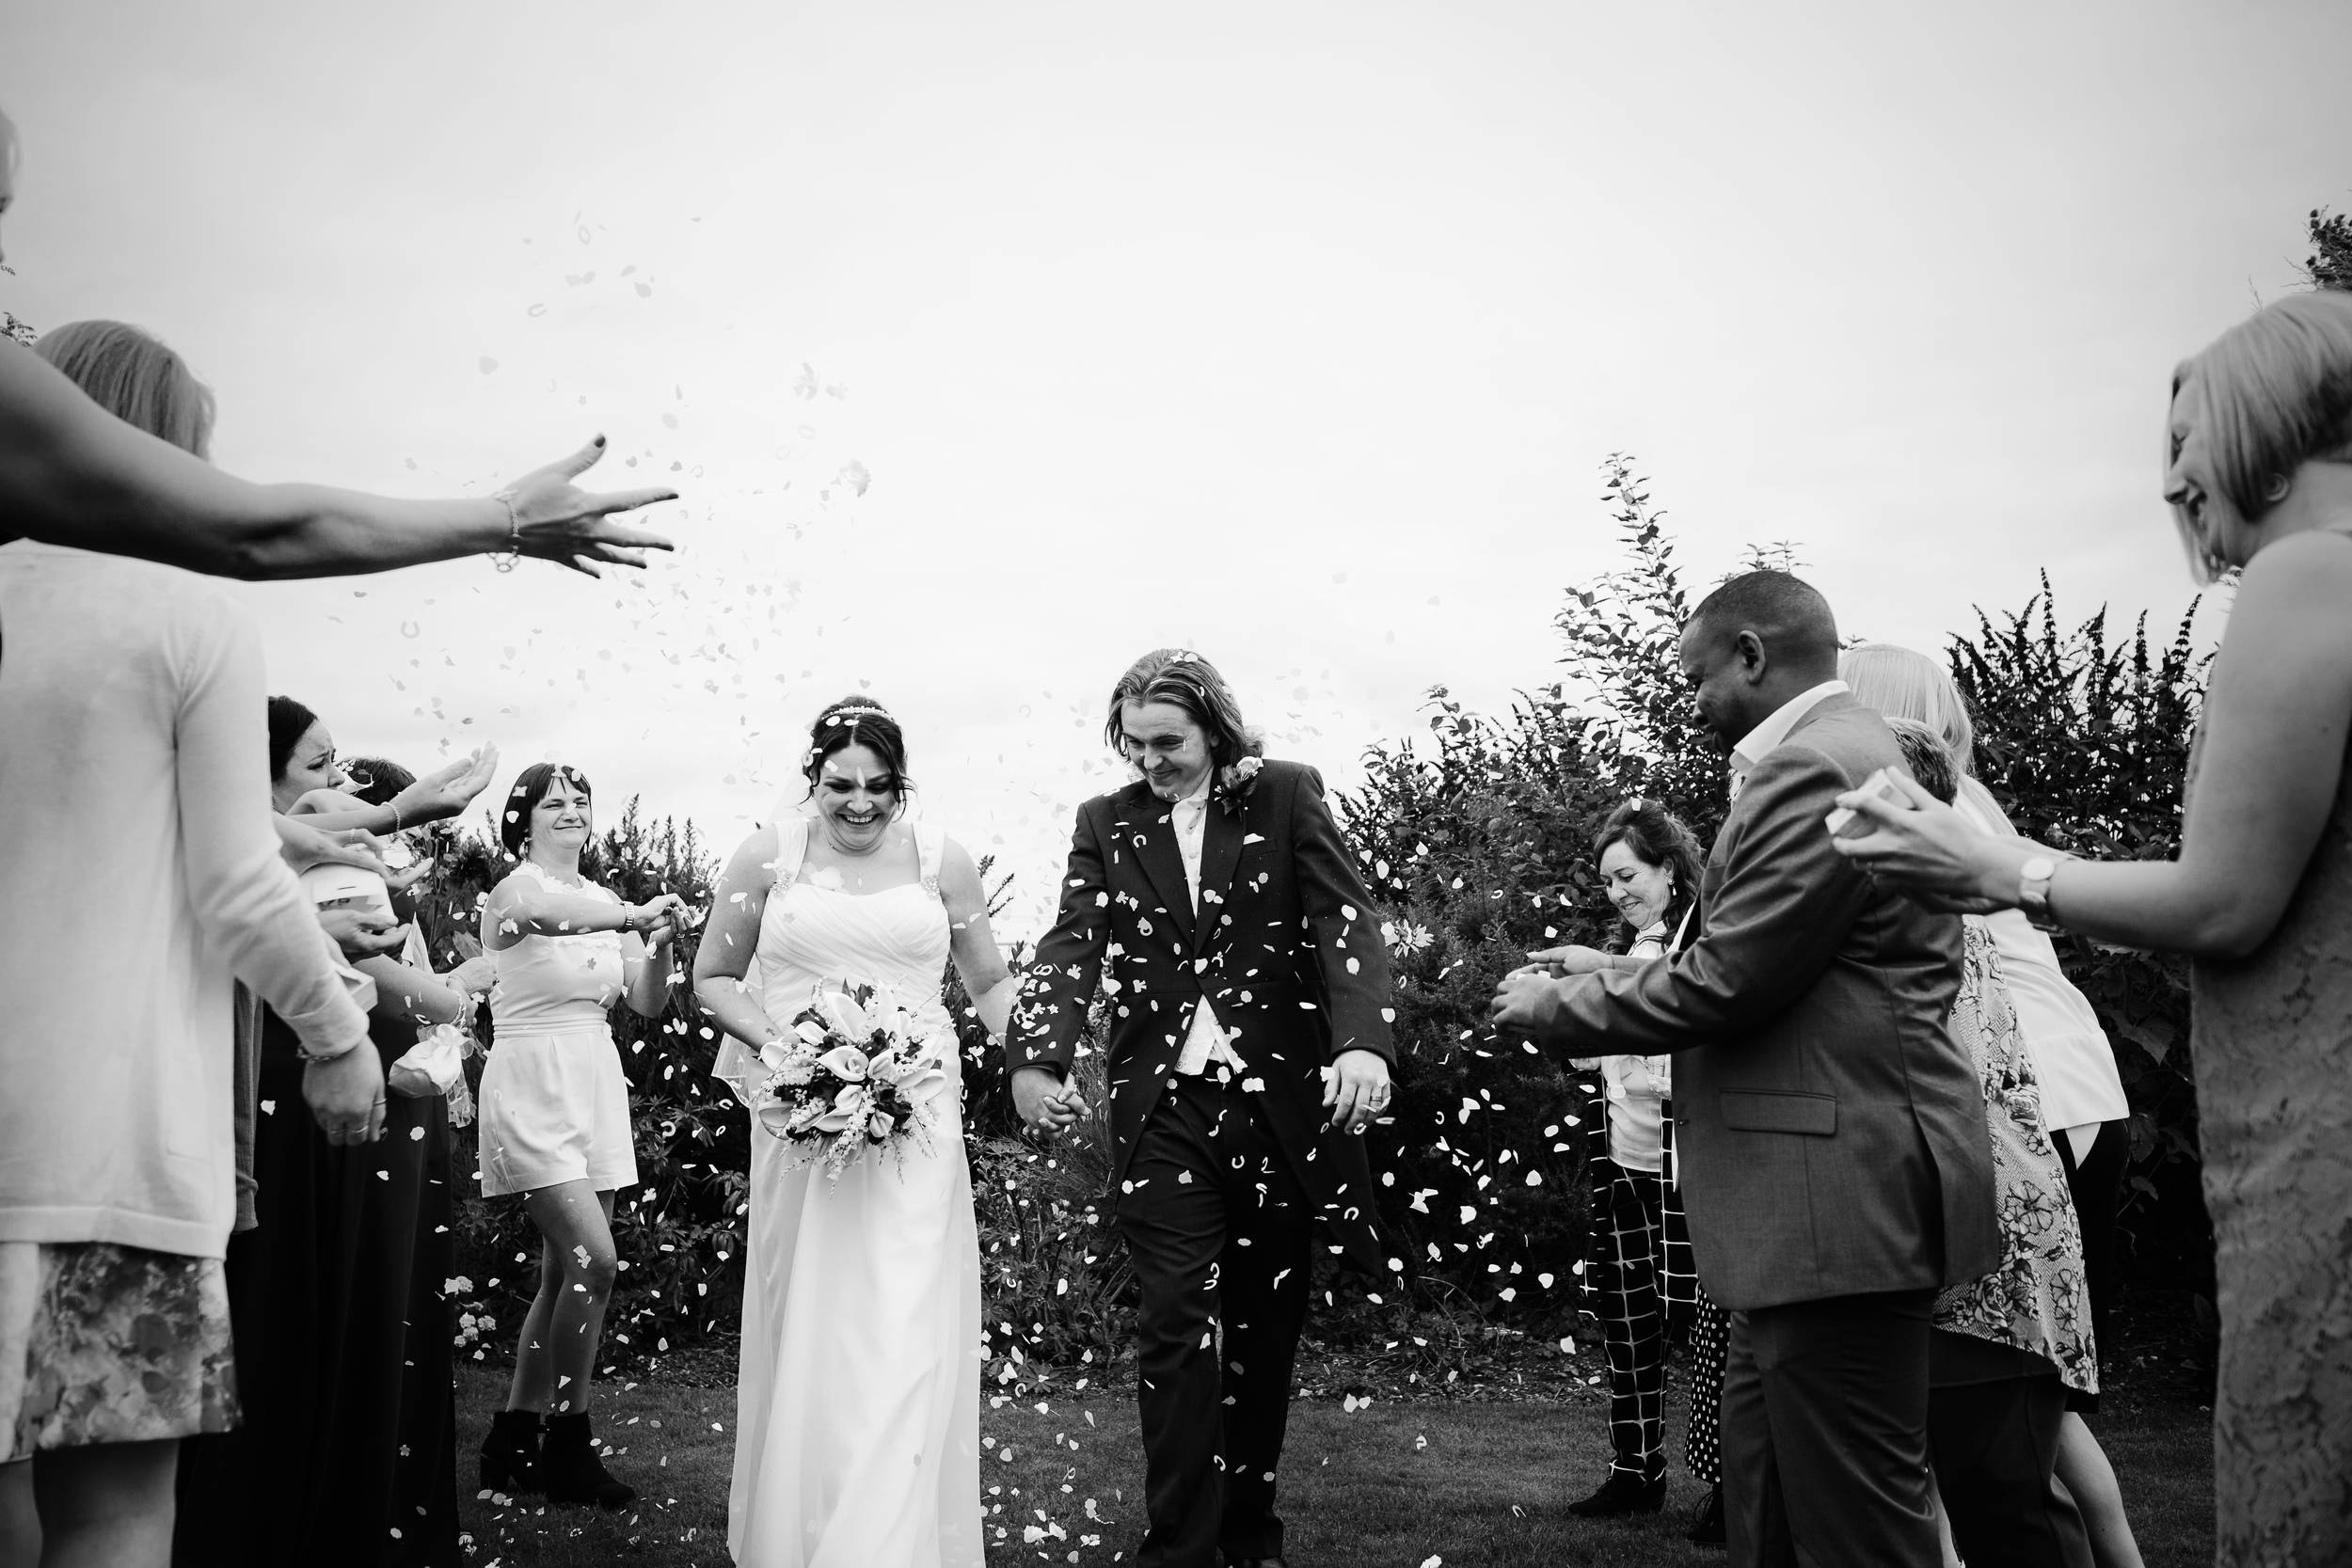 The bride and groom are showered with confetti at their wedding at South Causey Inn, Durham, in this black and white photograph